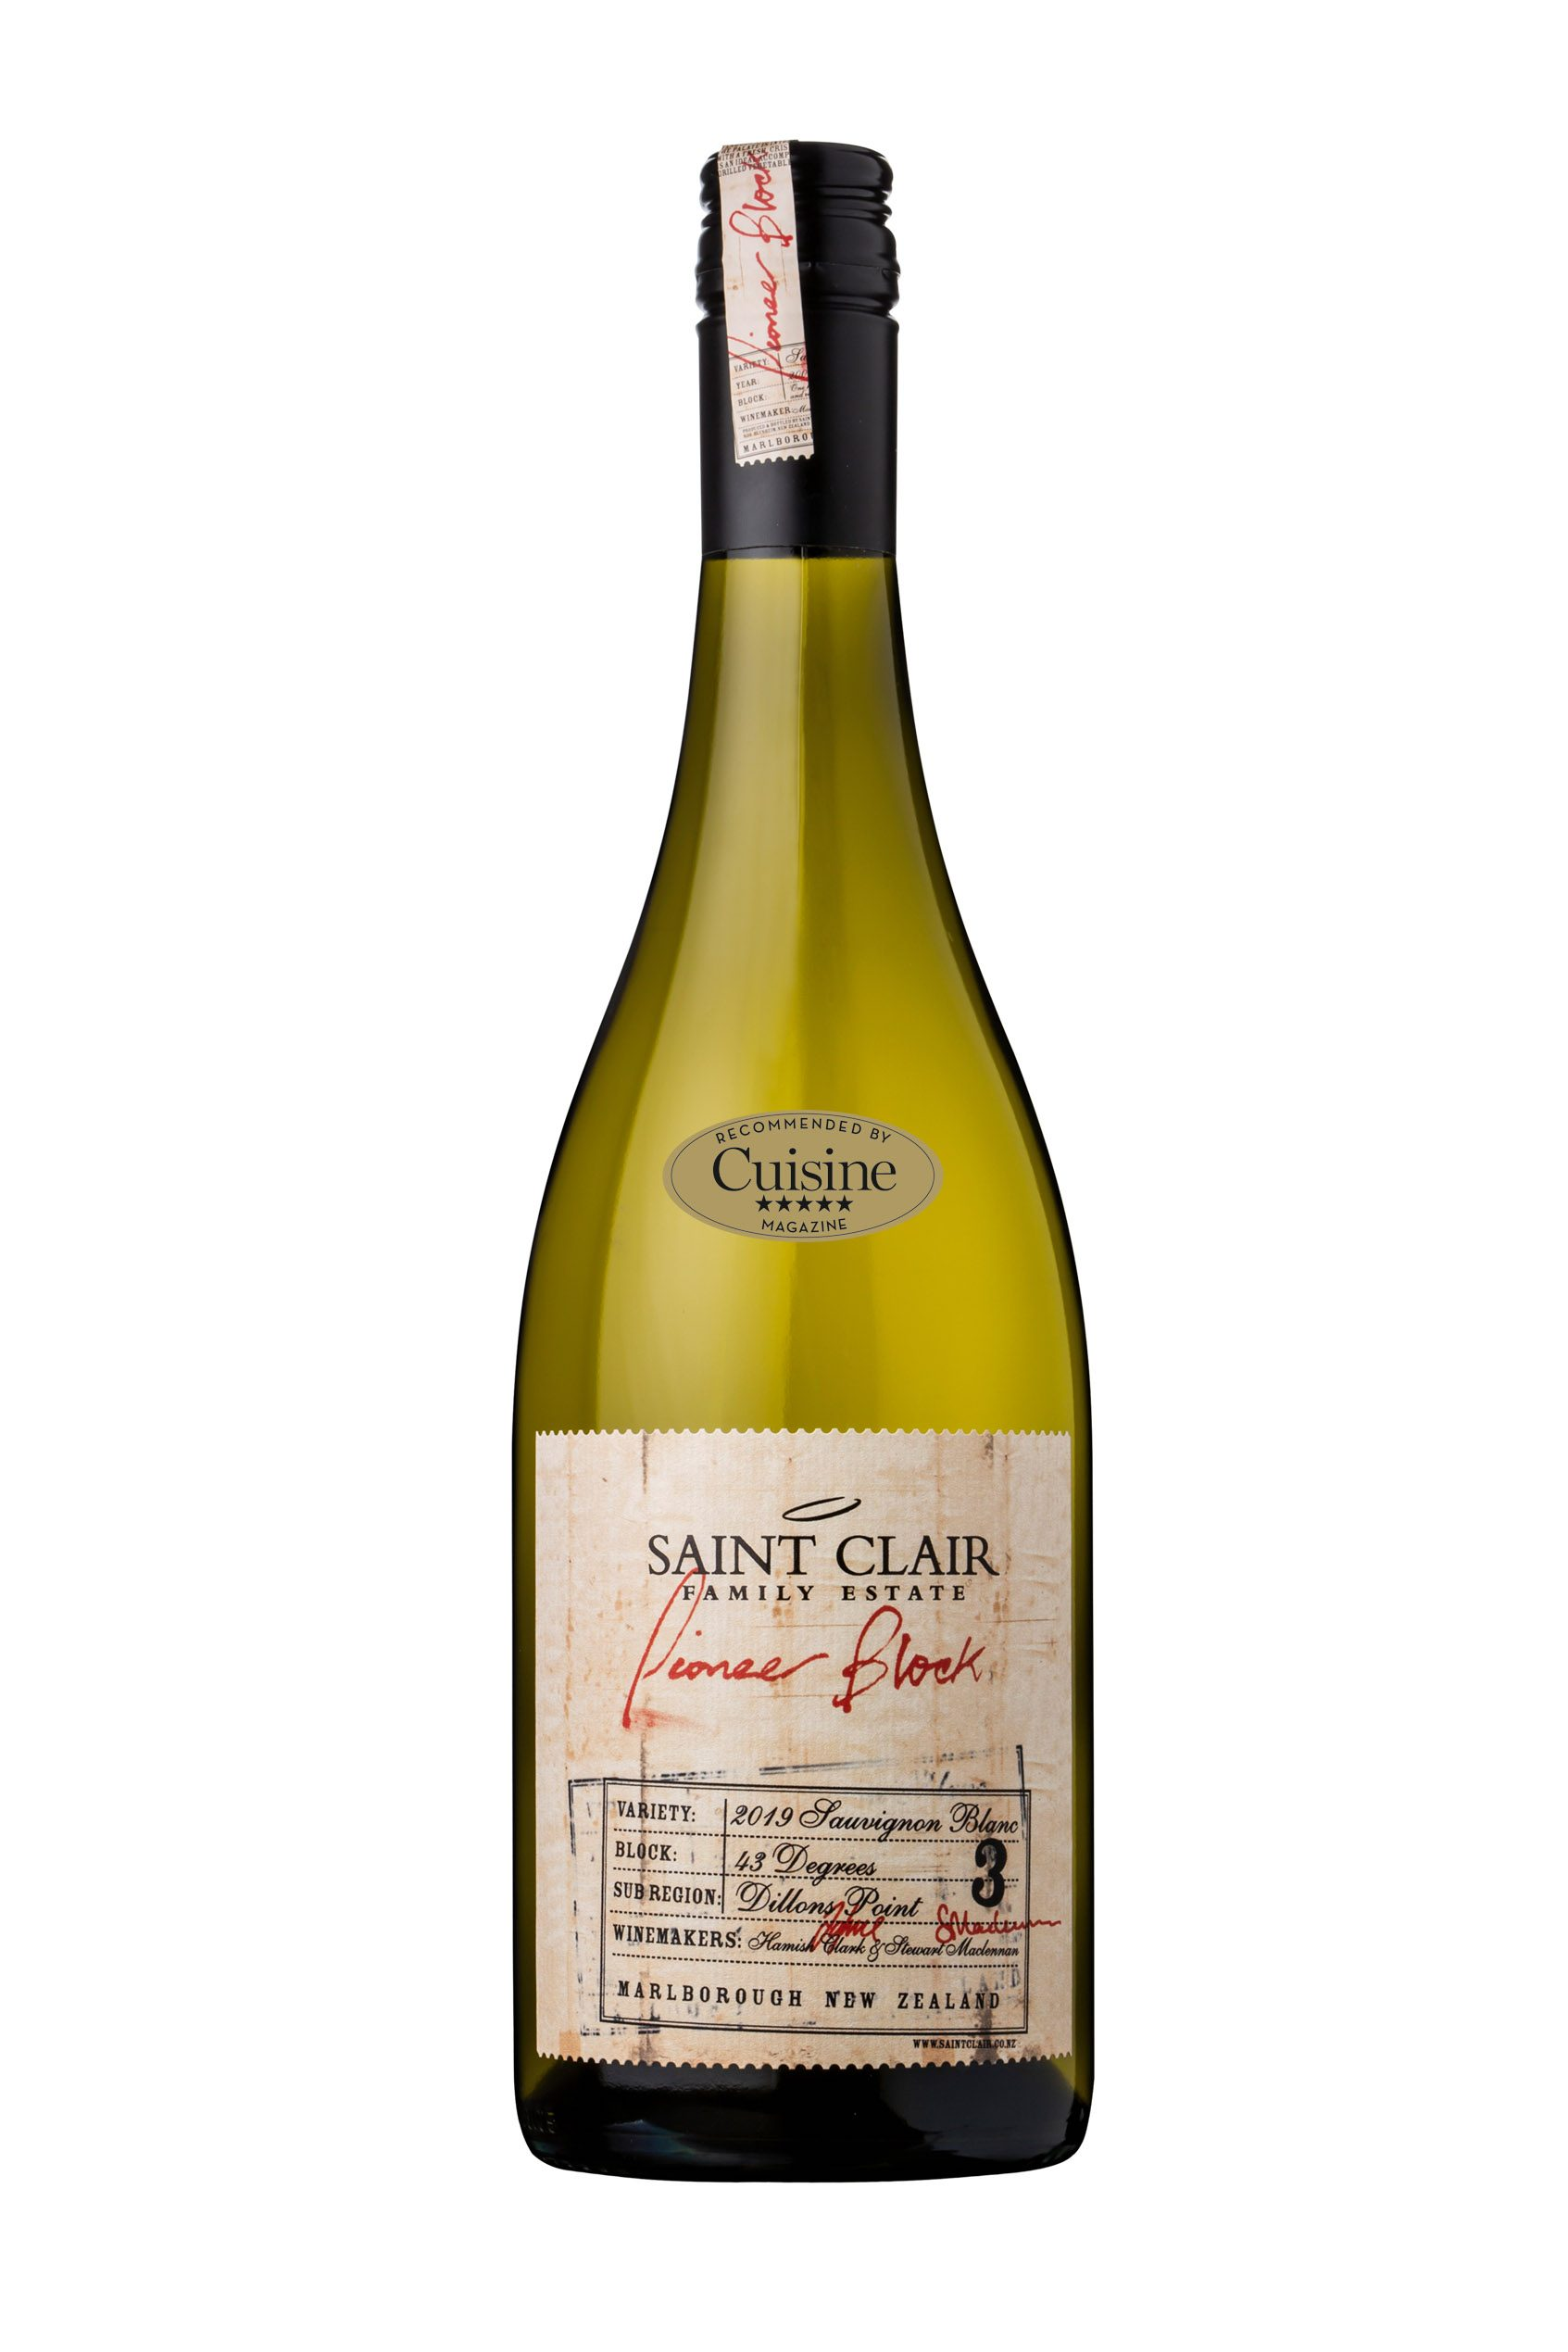 Saint Clair Pioneer Block 3 43 Degrees Sauvignon Blanc 2019 (Marlborough)